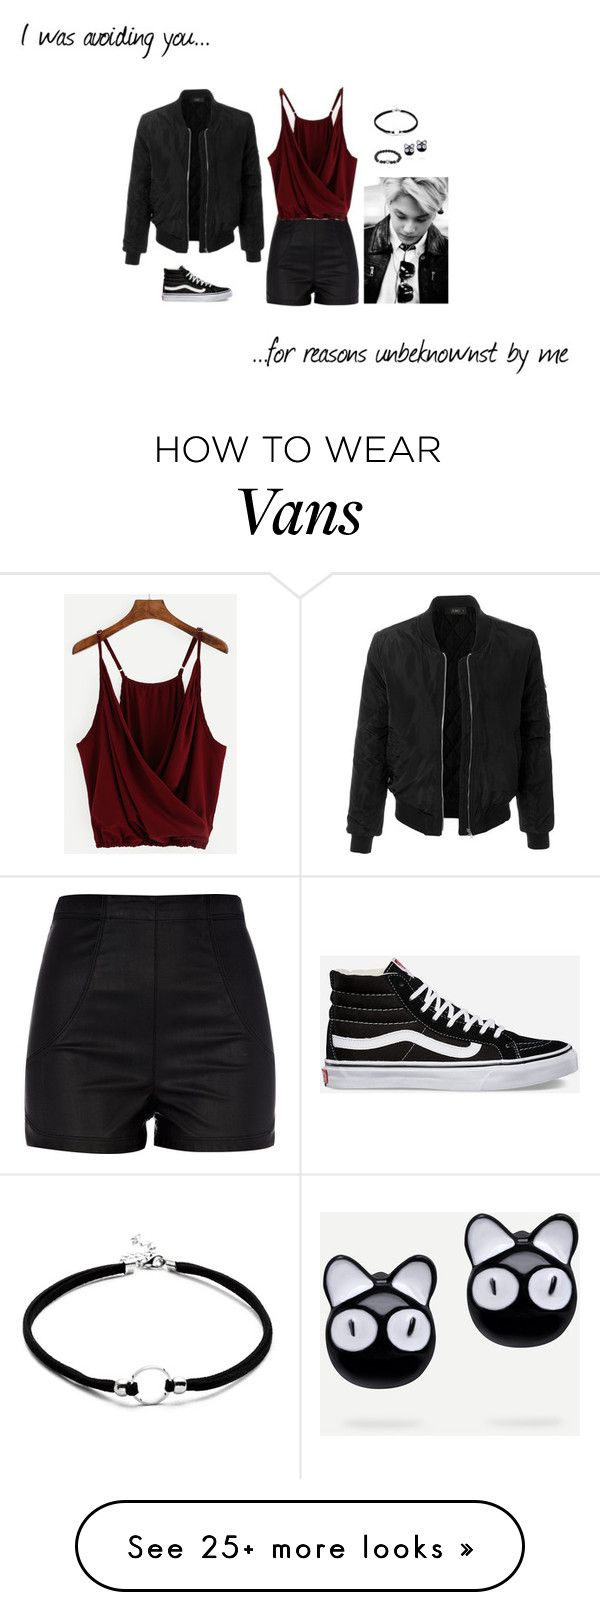 """#clubfeels"" by roxannetopper on Polyvore featuring River Island, LE3NO and Vans"